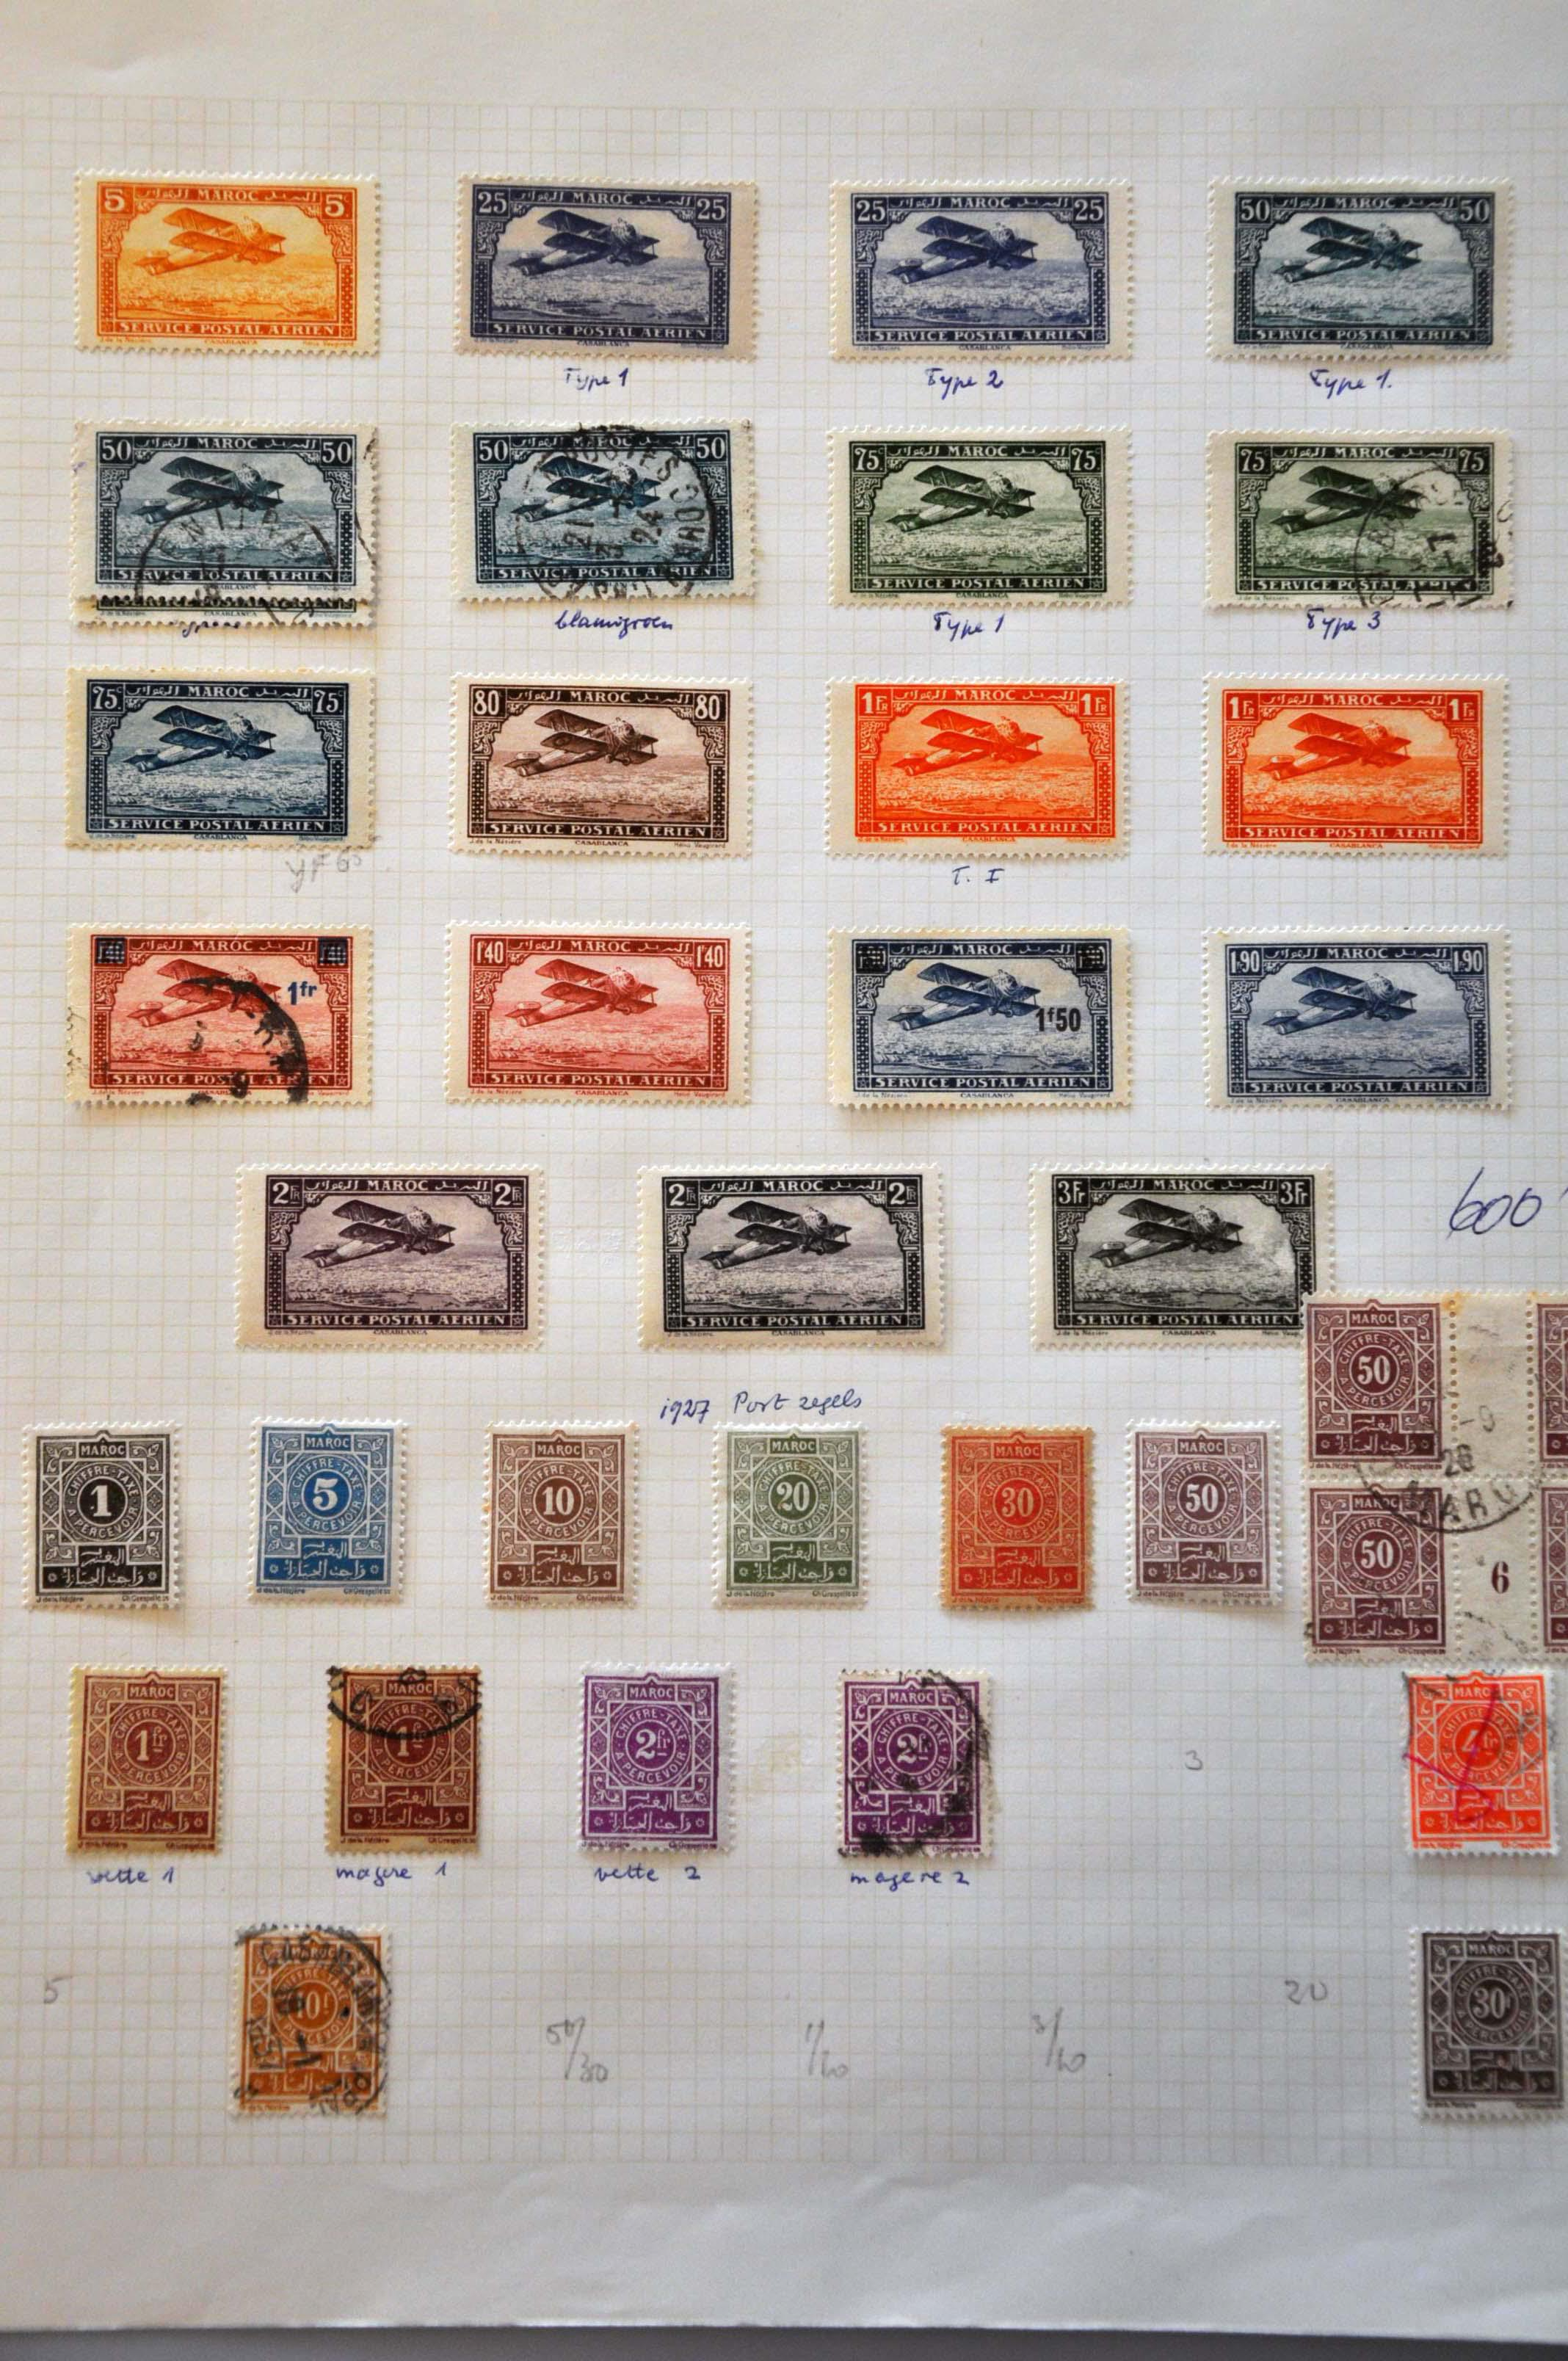 Lot 581 - France and former colonies French Mail in Morocco -  Corinphila Veilingen Auction 244 -Netherlands and former colonies, WW2 Postal History, Bosnia, German and British colonies, Egypt. - Day 1